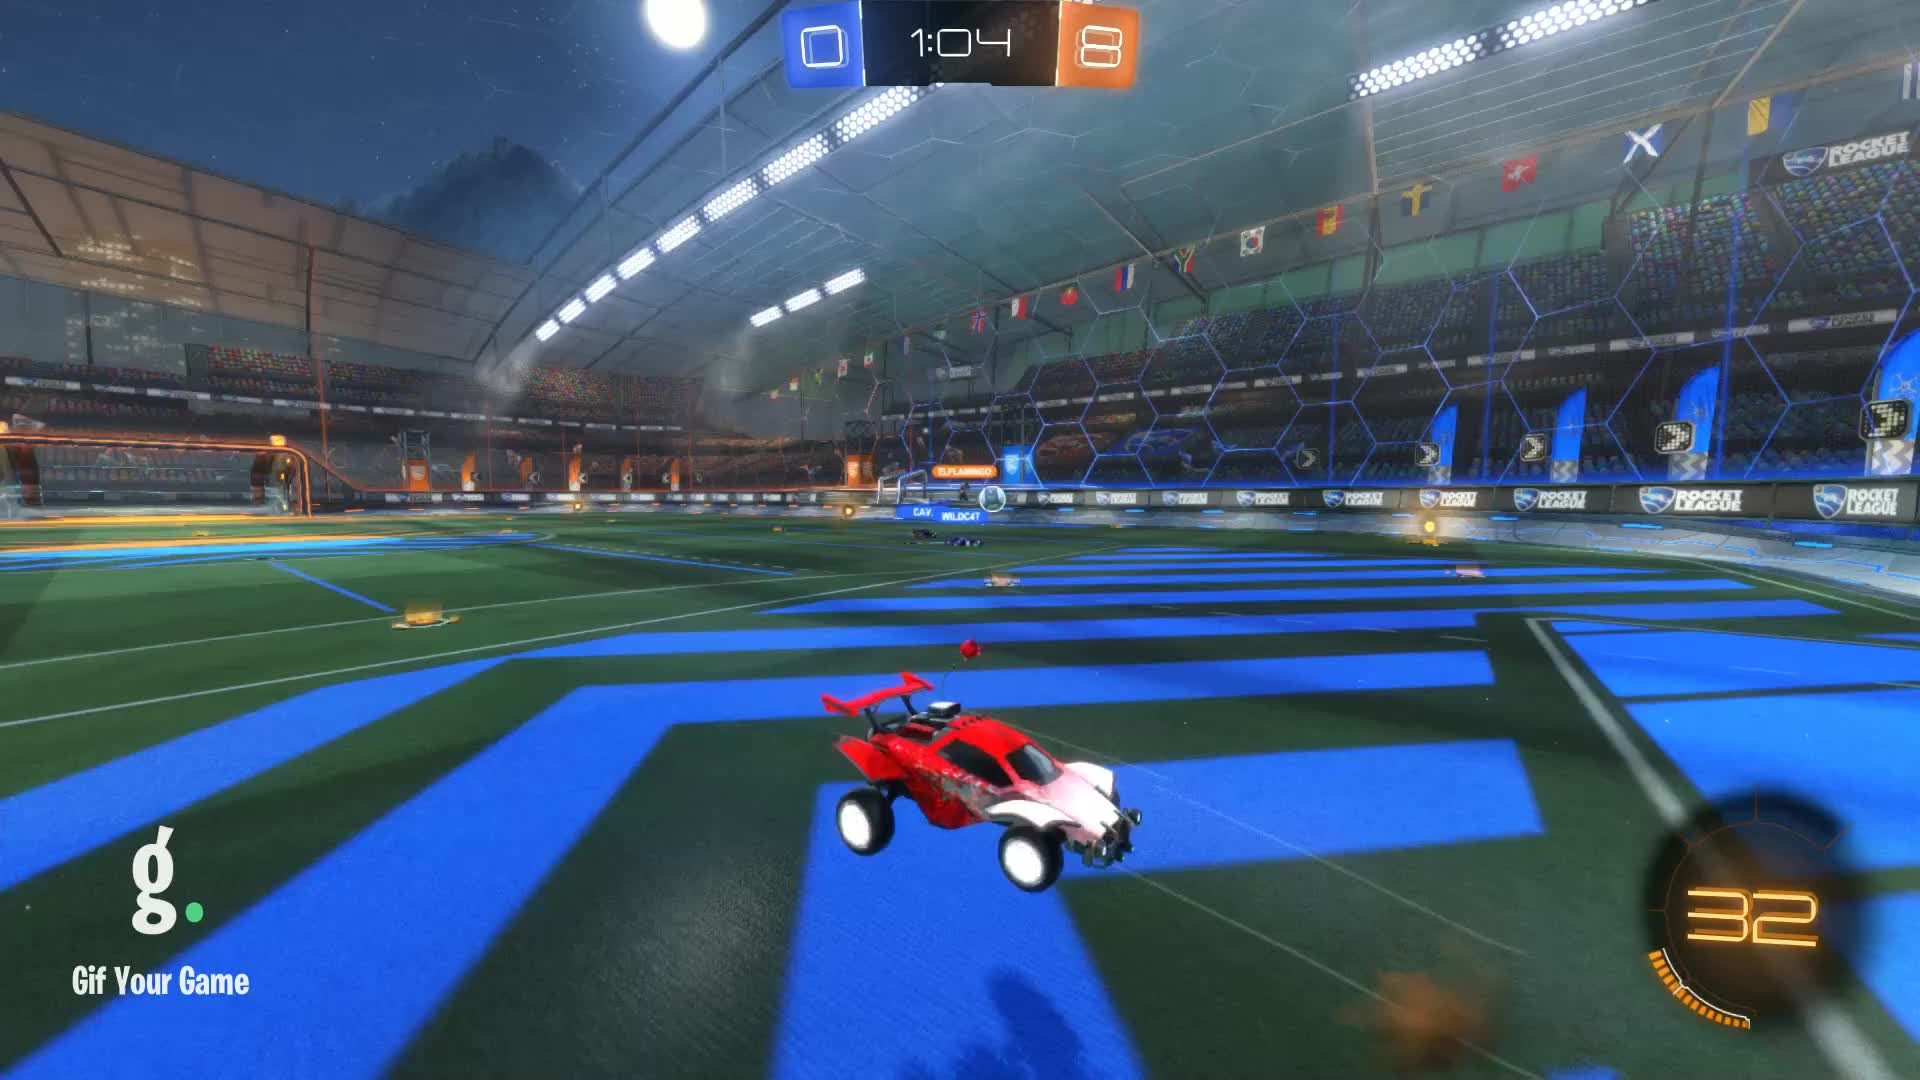 Gif Your Game, GifYourGame, Goal, Rocket League, RocketLeague, luckyman268, Goal 9: luckyman268 GIFs